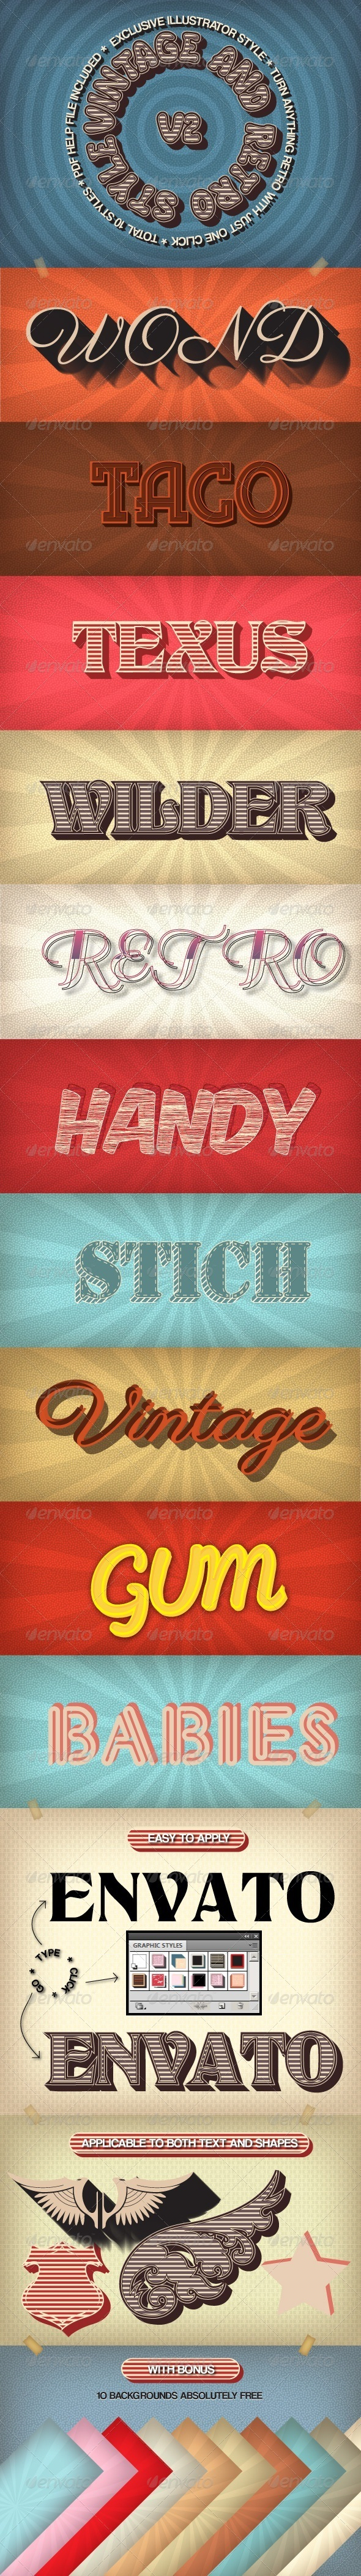 GraphicRiver Vintage and Retro Styles V2 5986624